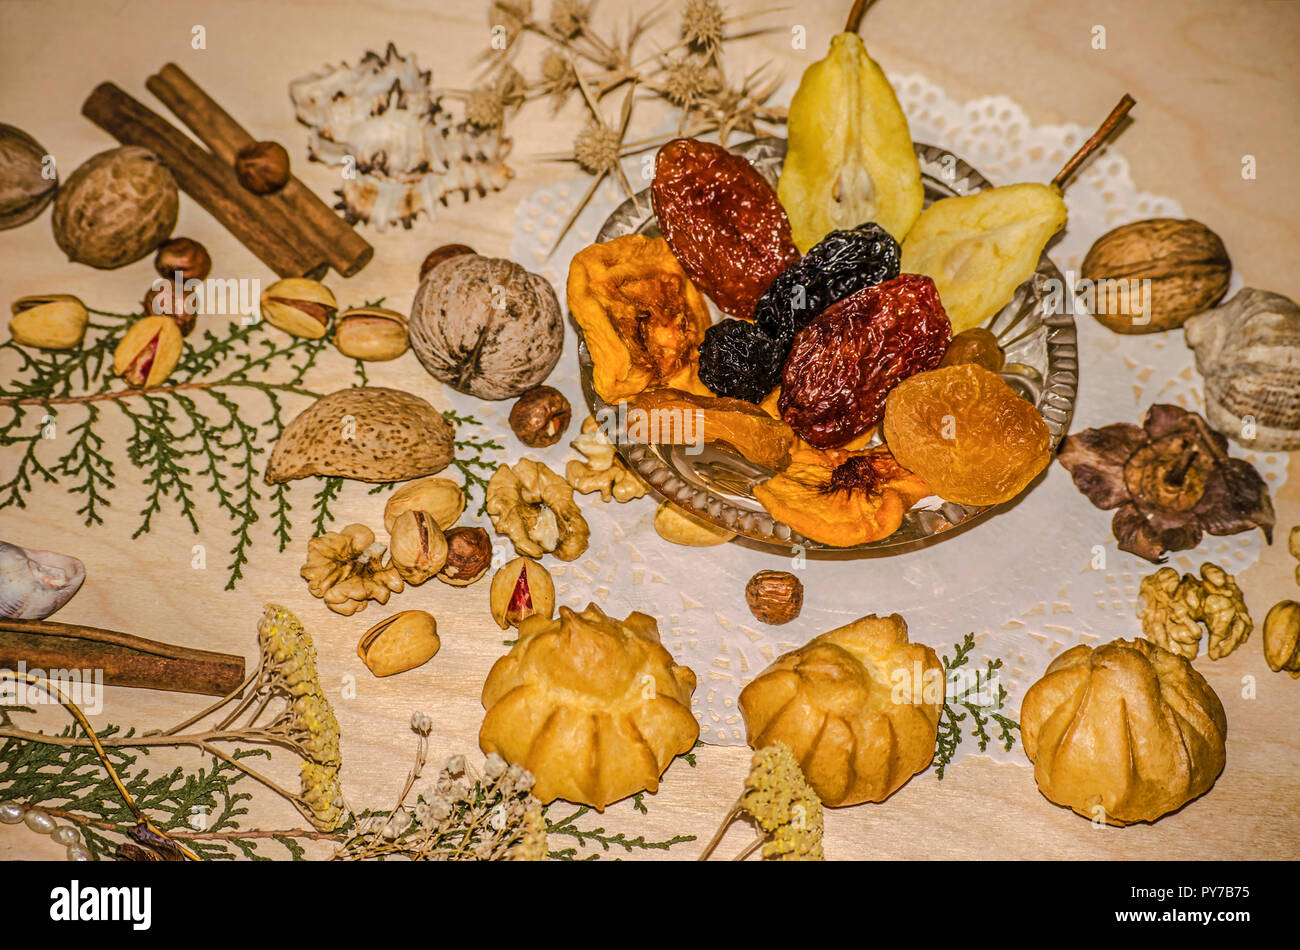 Dried frui in crystal rosette, nuts, pistachio, hazelnut, with eclairs, cinnamon surrounded by dried plants and shells on a figured shaped napkin - Stock Image